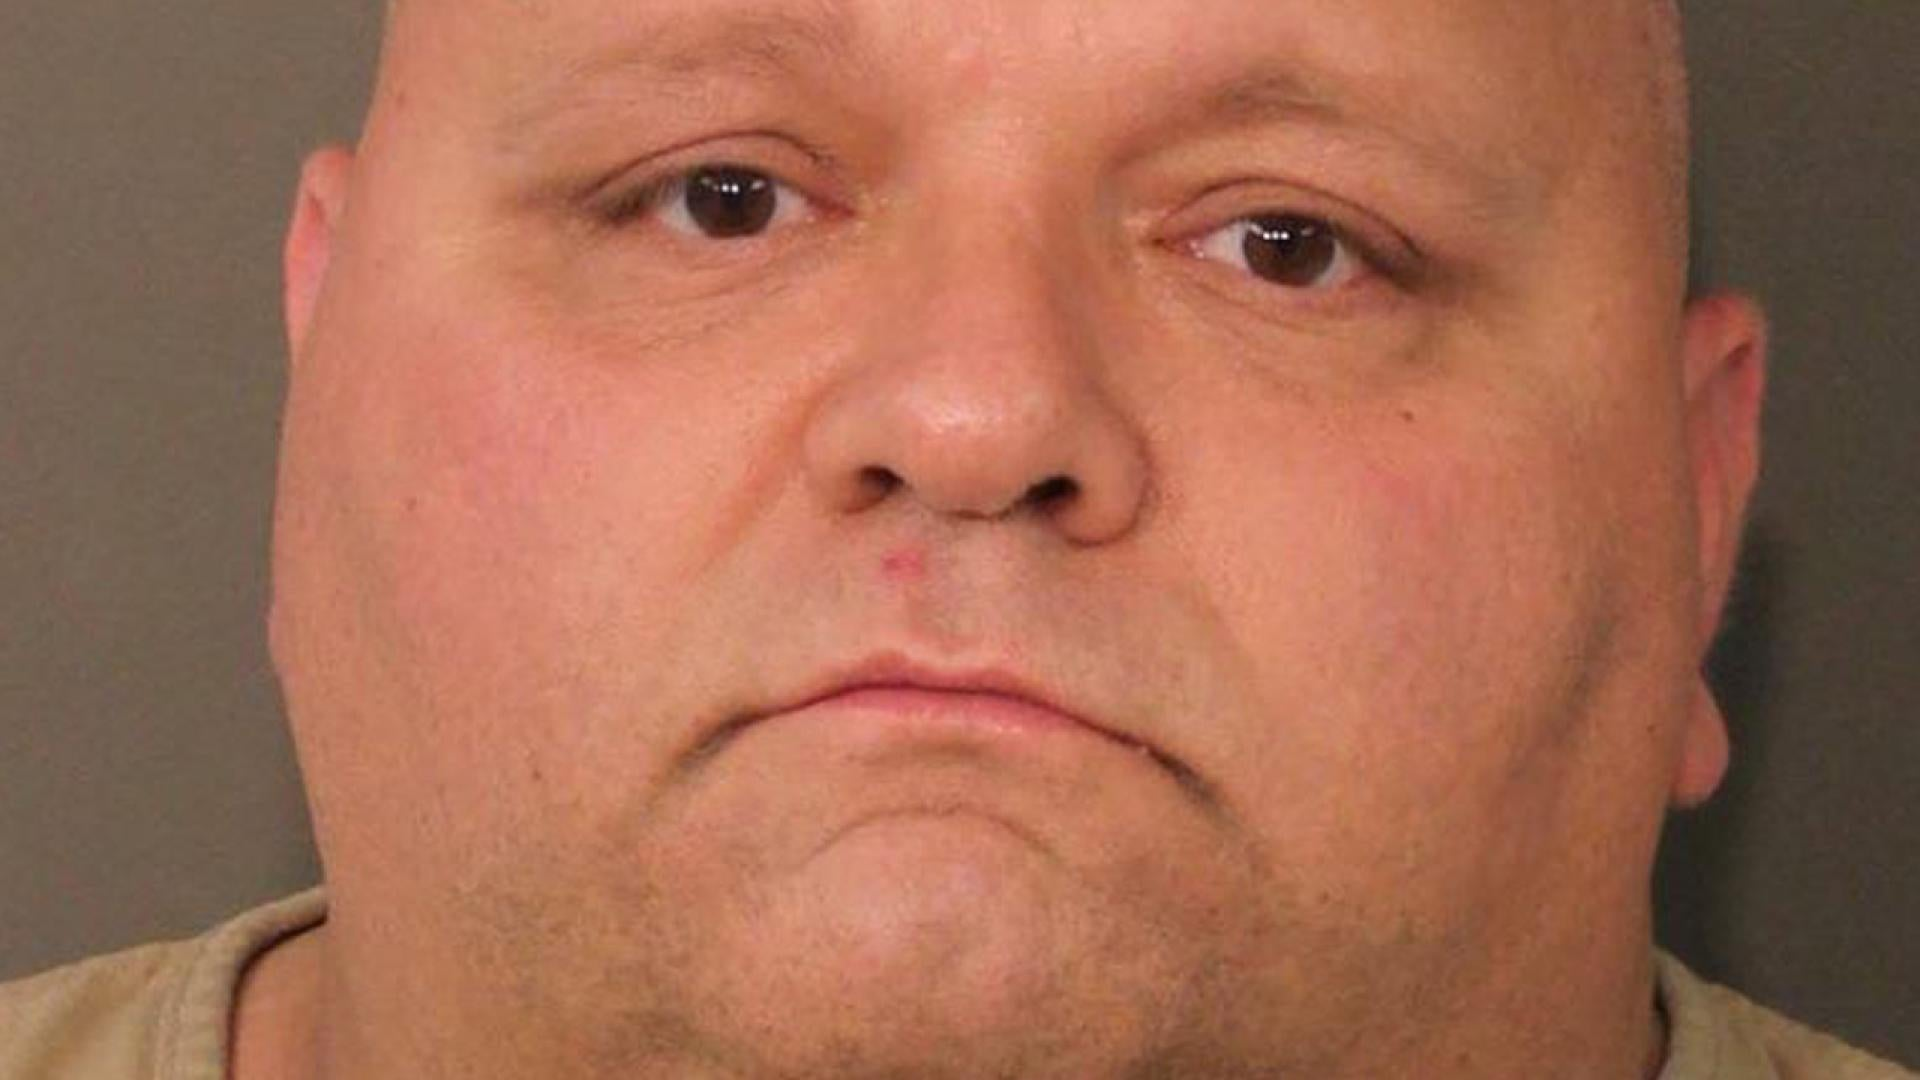 Michael Middleton, 43, is accused of tying the knot with at least three women in three different states, all of whom were apparently unaware that they were not his one and only wife, authorities said.